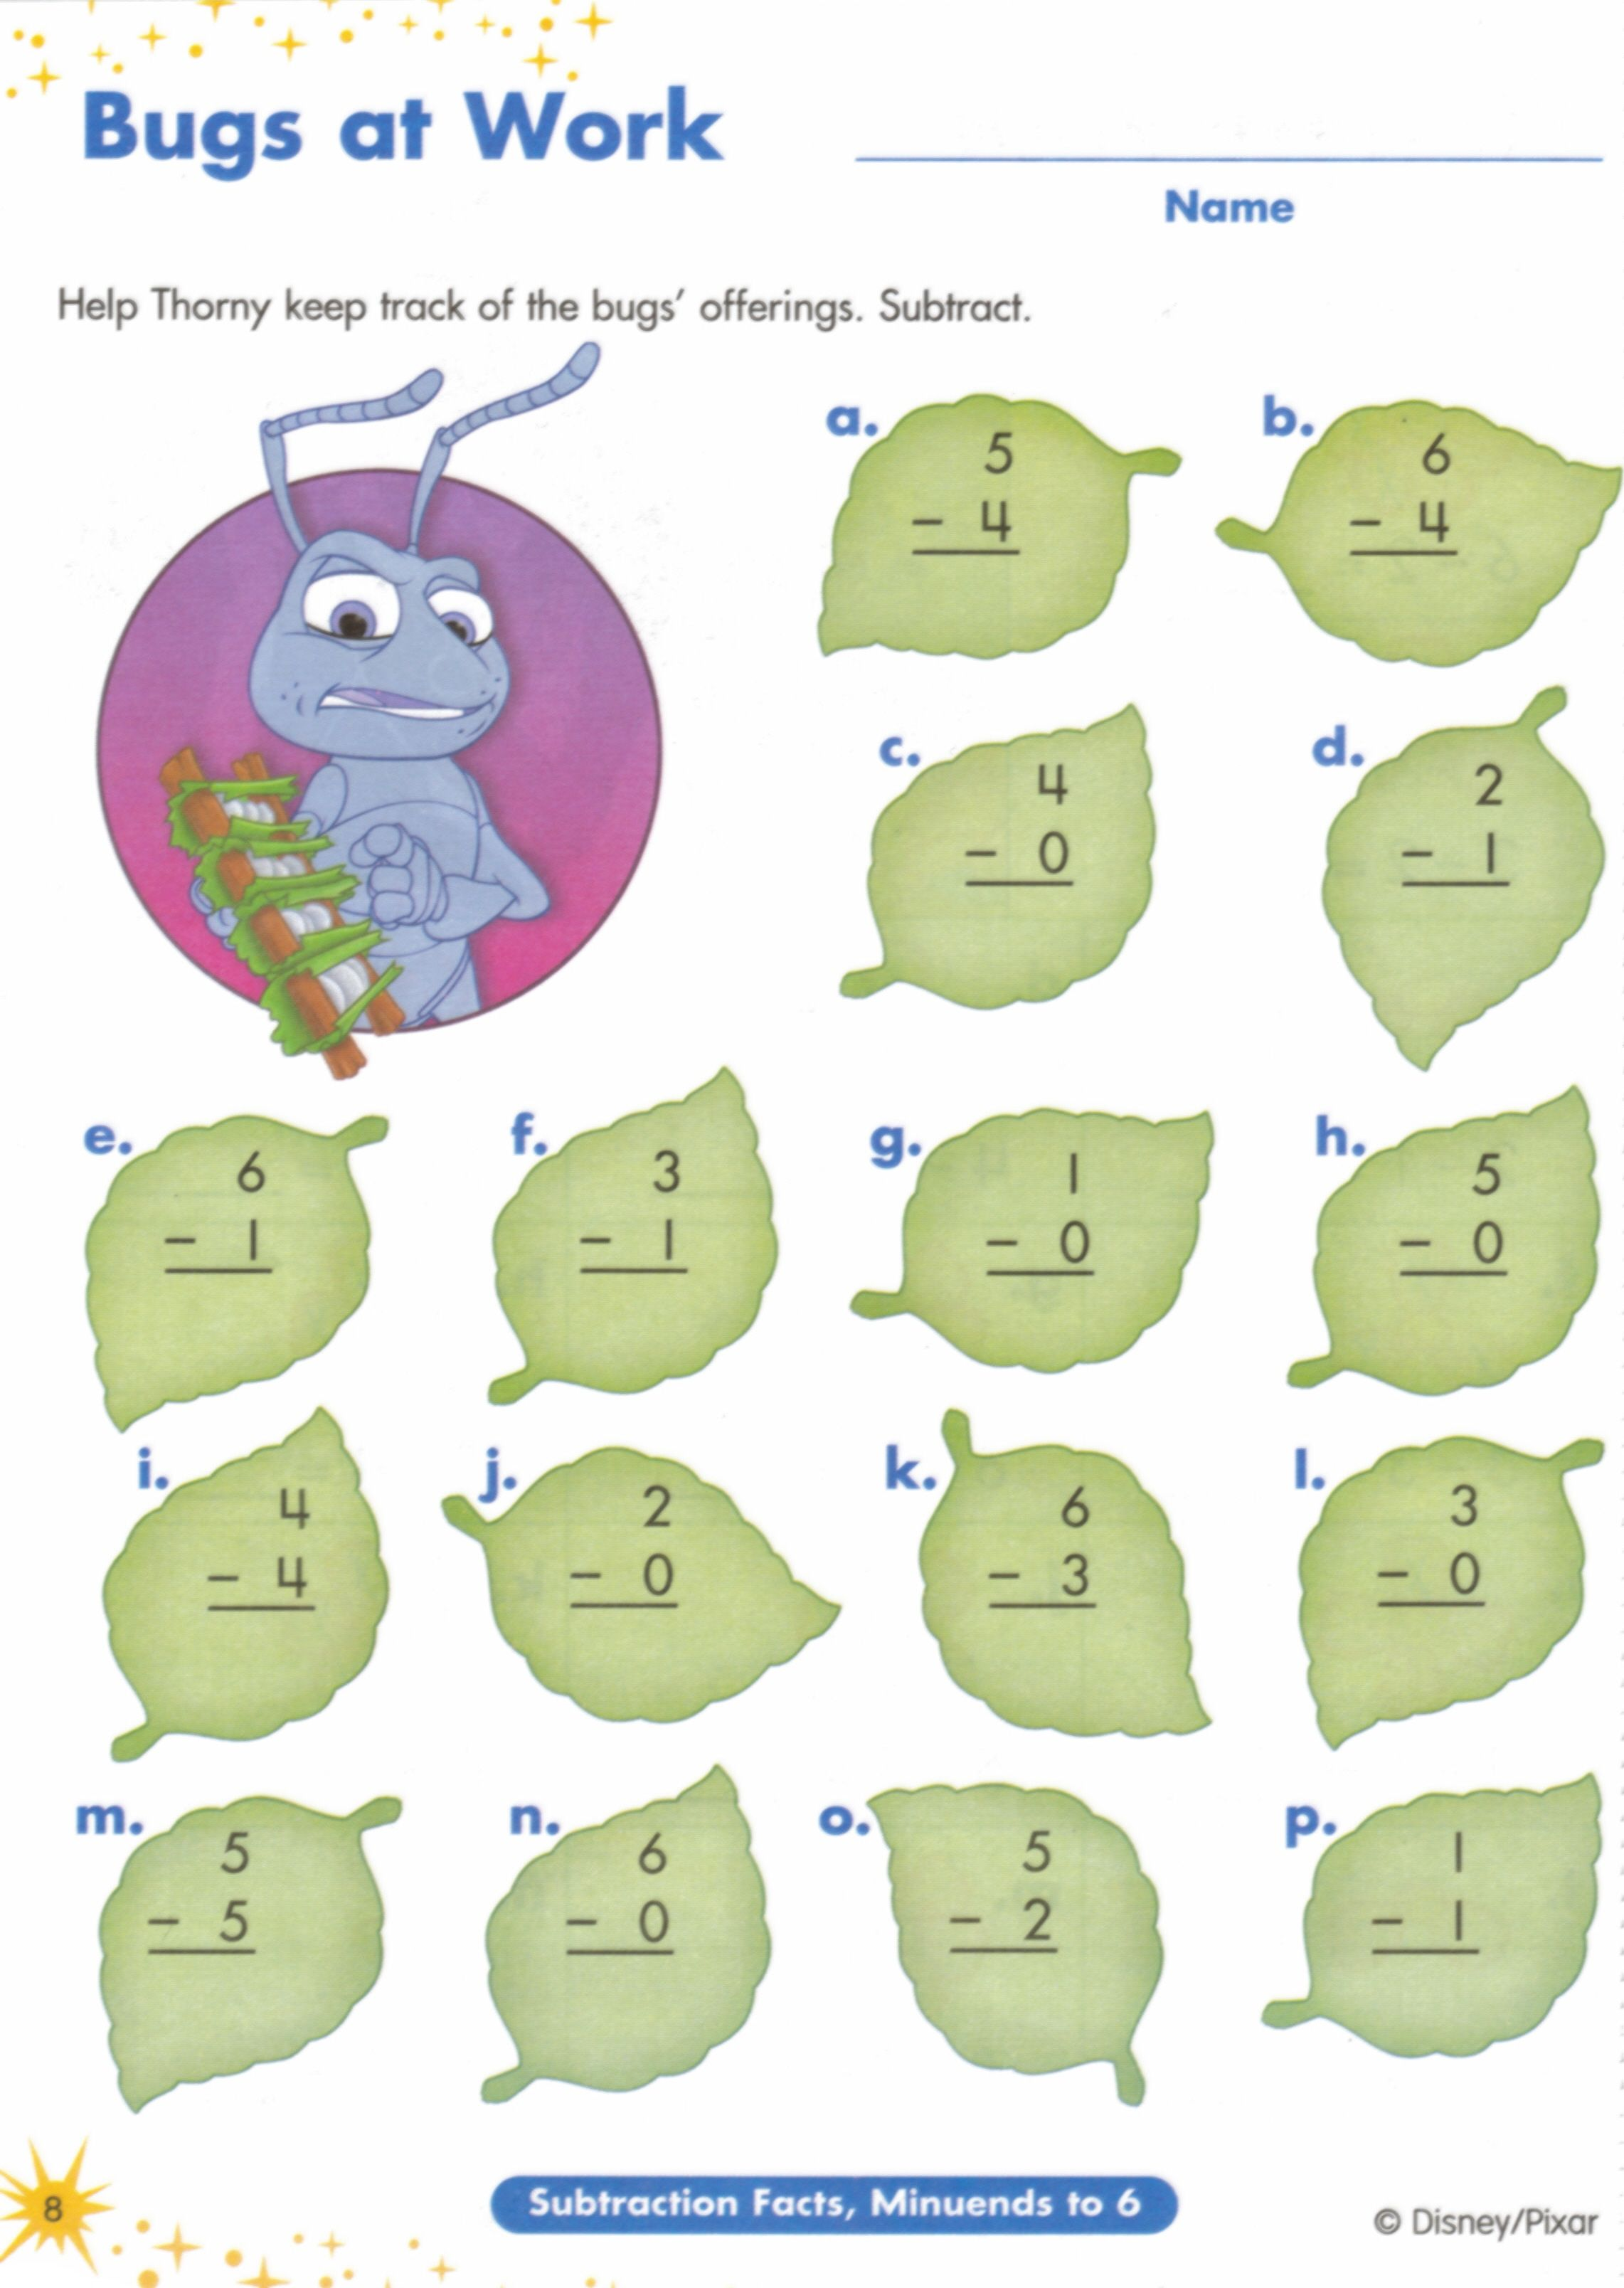 Weirdmailus  Marvellous  Images About Worksheets On Pinterest  Fun Facts For Kids  With Fetching  Images About Worksheets On Pinterest  Fun Facts For Kids Earth Day Worksheets And Jungles With Awesome Making Inferences Worksheets Also Math Common Core Worksheets In Addition Combining Like Terms Worksheet Answers And Subtraction With Regrouping Worksheet As Well As Adding Mixed Numbers Worksheet Additionally Self Talk Worksheets From Pinterestcom With Weirdmailus  Fetching  Images About Worksheets On Pinterest  Fun Facts For Kids  With Awesome  Images About Worksheets On Pinterest  Fun Facts For Kids Earth Day Worksheets And Jungles And Marvellous Making Inferences Worksheets Also Math Common Core Worksheets In Addition Combining Like Terms Worksheet Answers From Pinterestcom